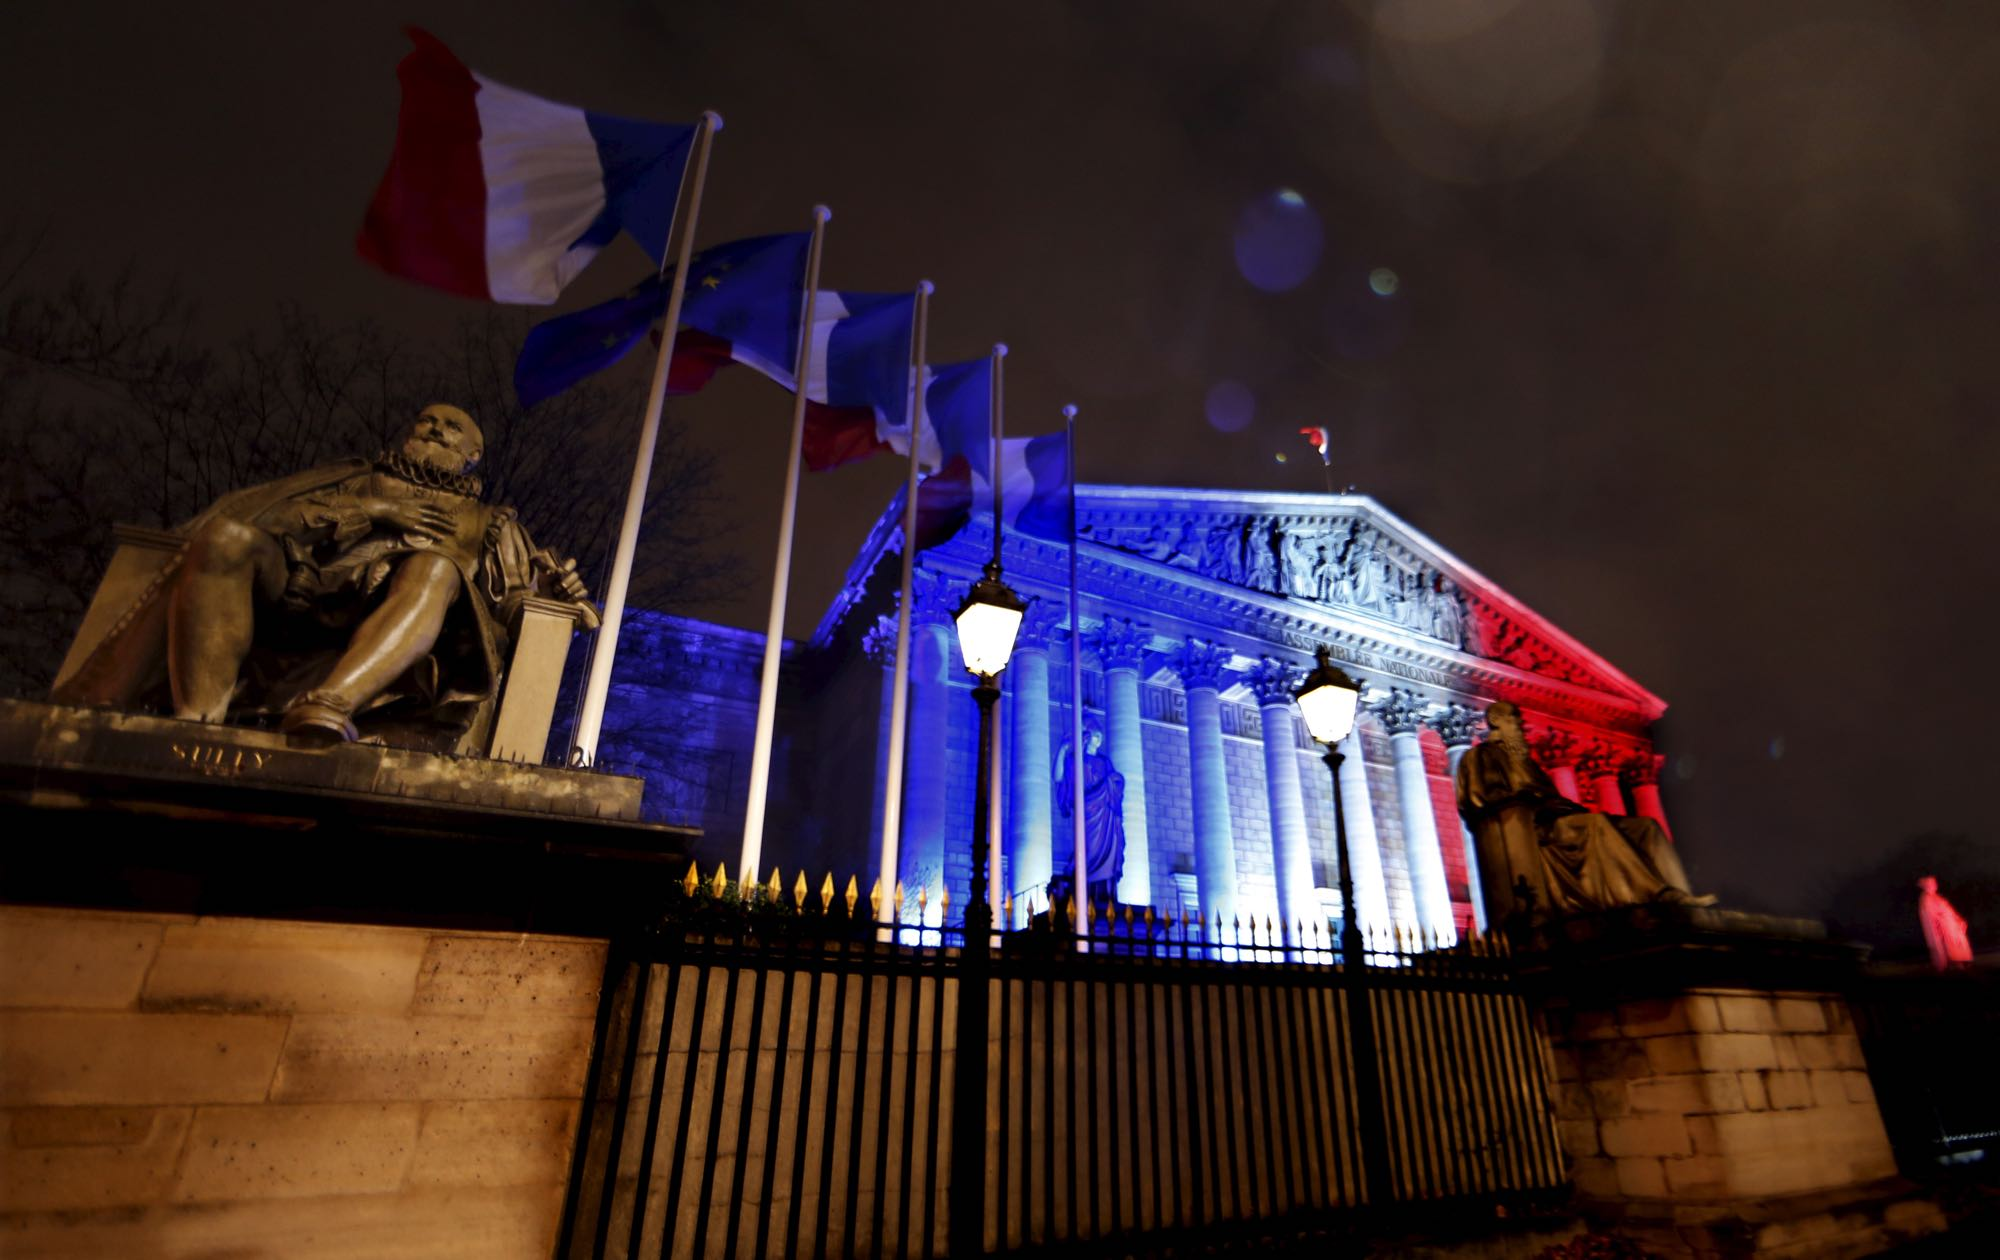 France's National Assembly  lit with the colors of the French flag in Paris, Nov. 19, 2015, to honor victims of terrorist attacks. [Reuters]